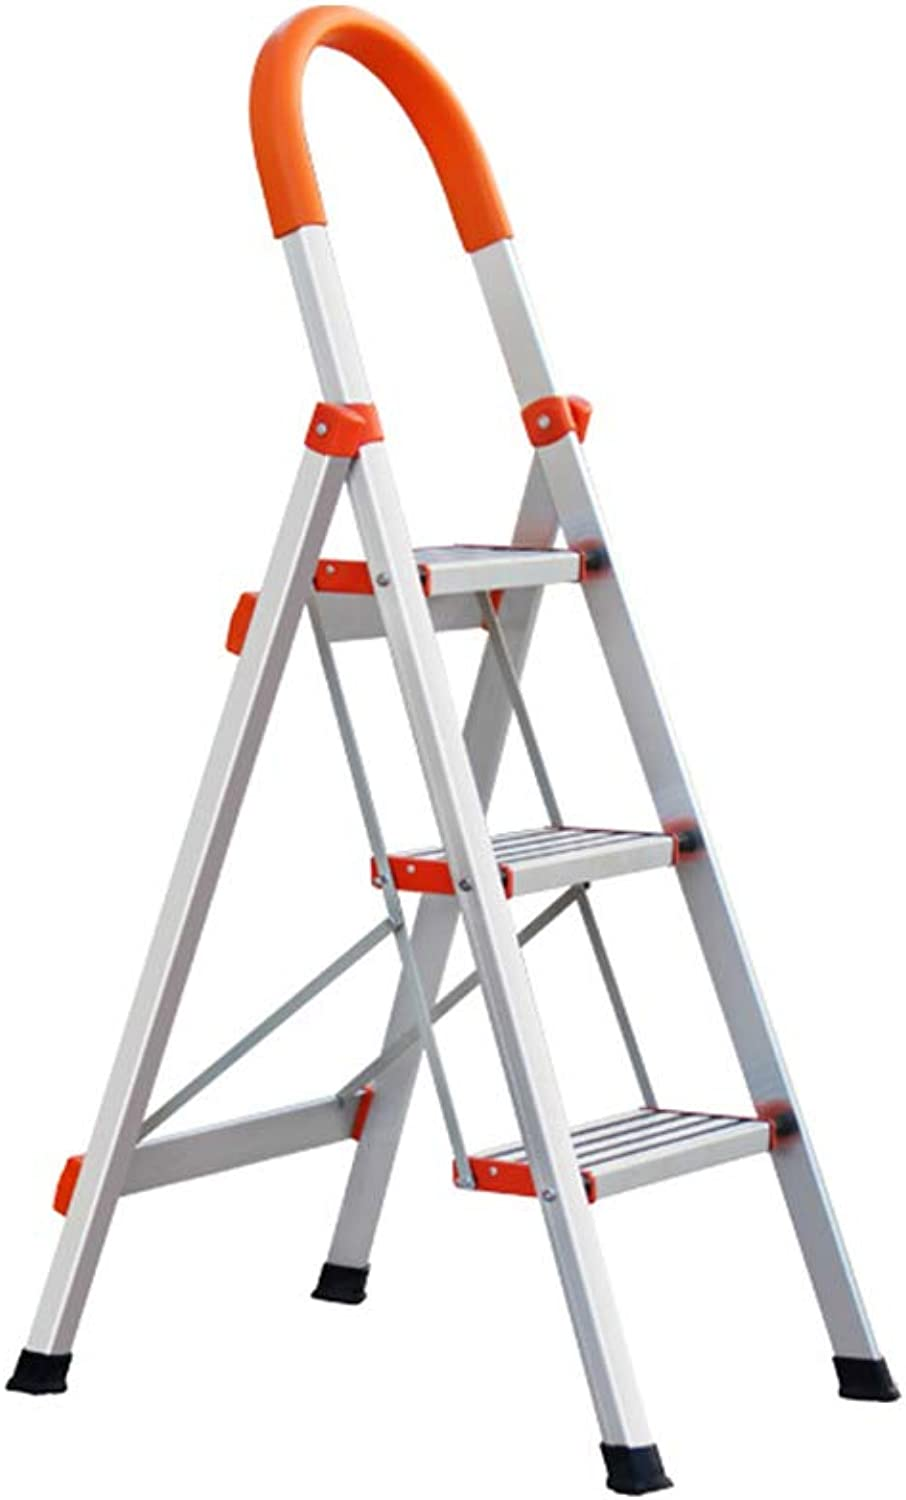 LIYONG Household Ladder Aluminum Folding Ladder Anti-Skid Pedal